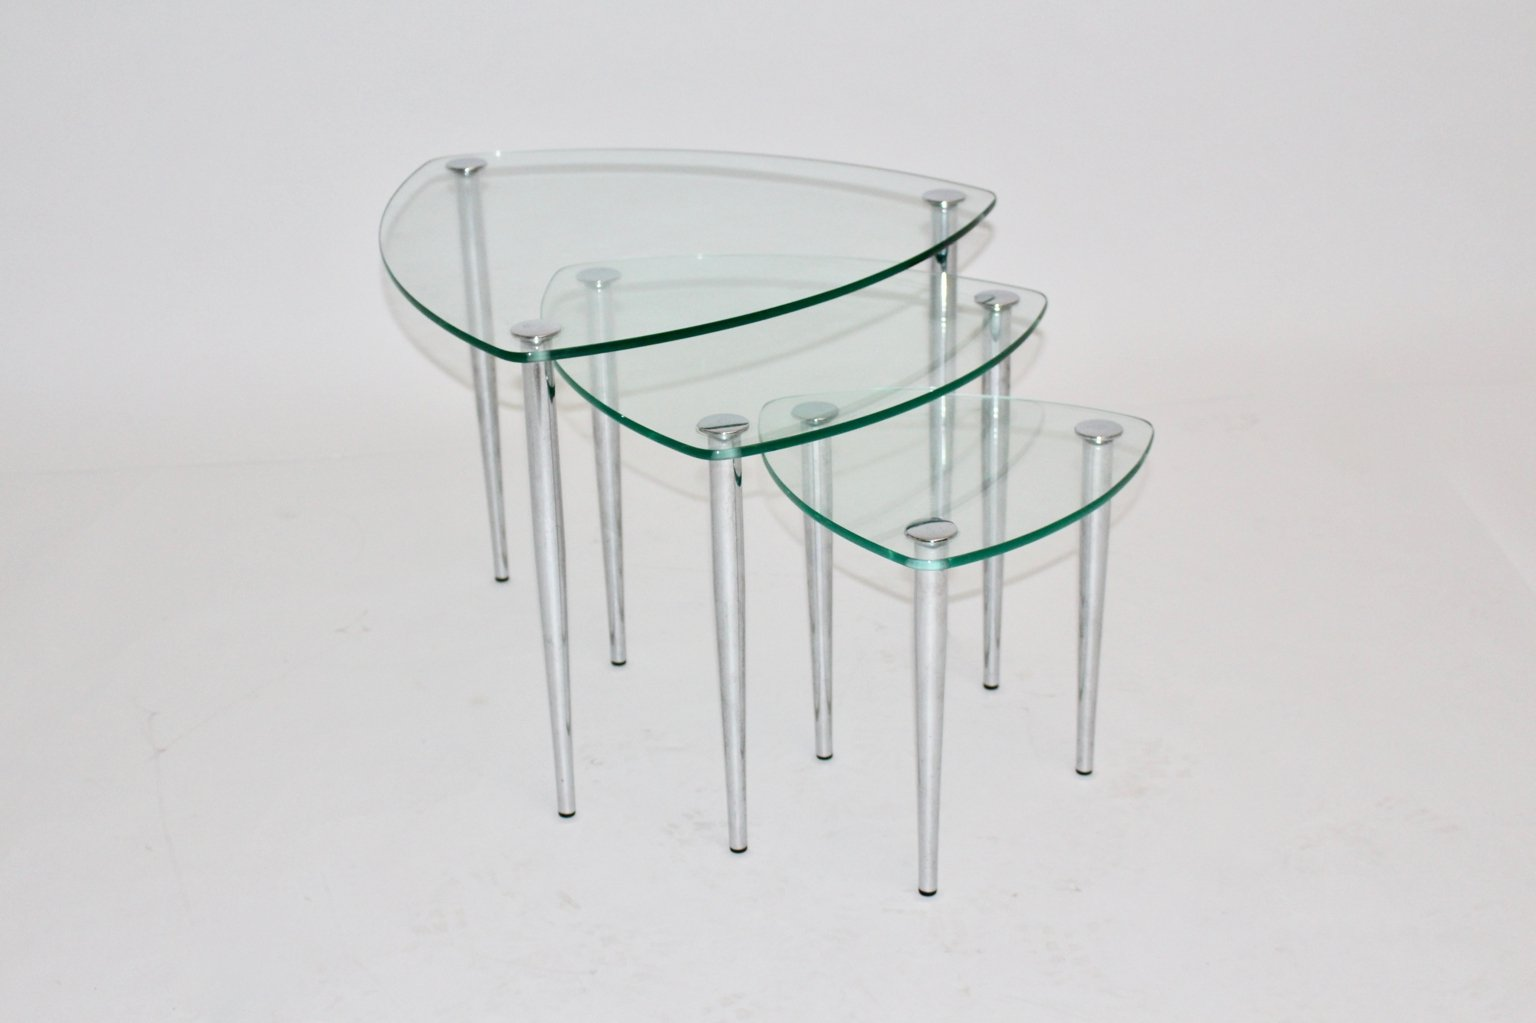 Mid century italian chrome and glass nesting tables 1960s for sale mid century italian chrome and glass nesting tables 1960s watchthetrailerfo